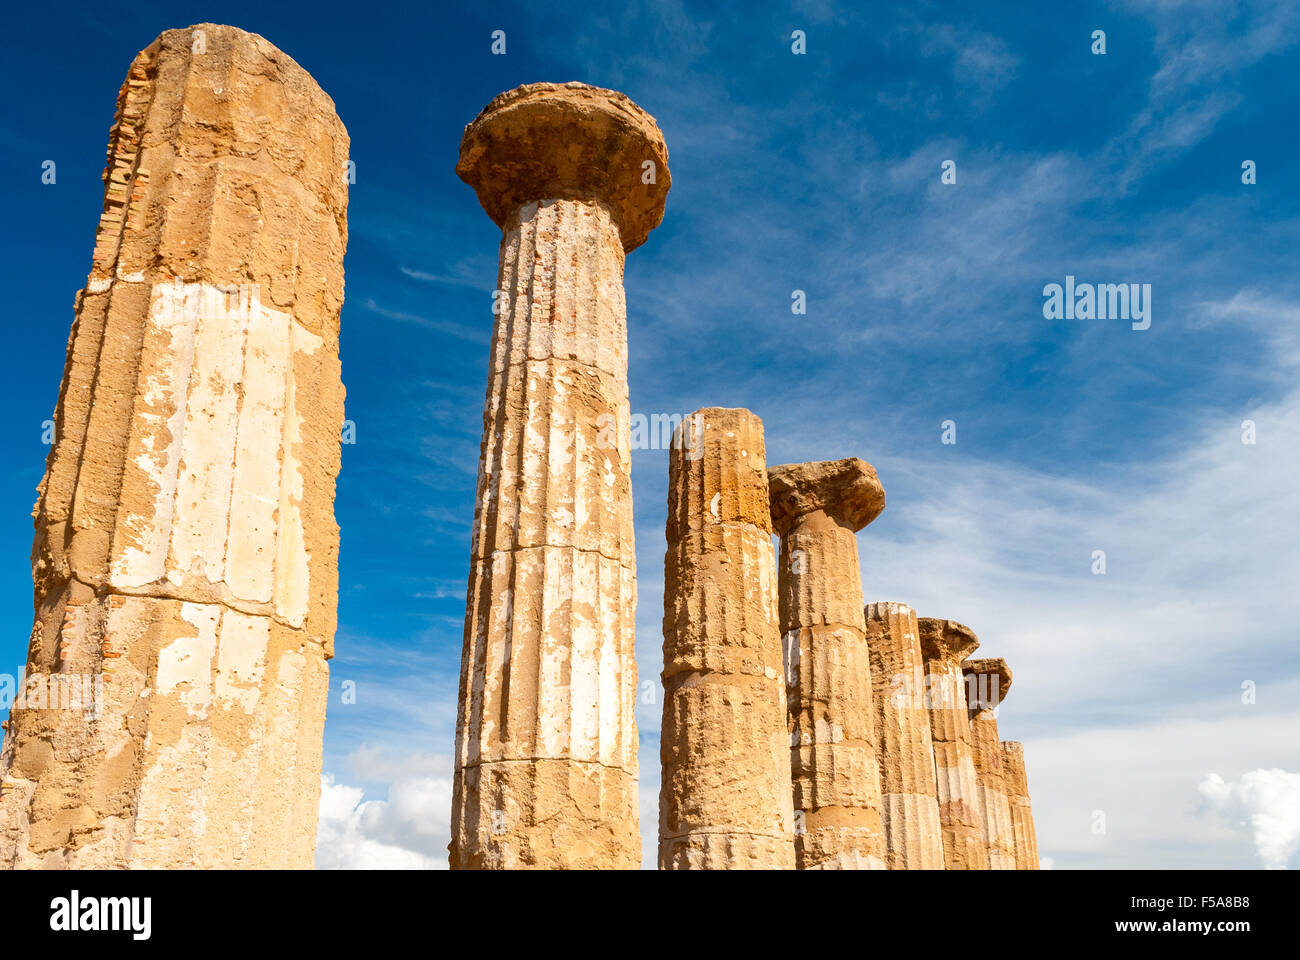 Doric columns of the Heracles temple in Agrigento with blue sky and clouds in background - Stock Image